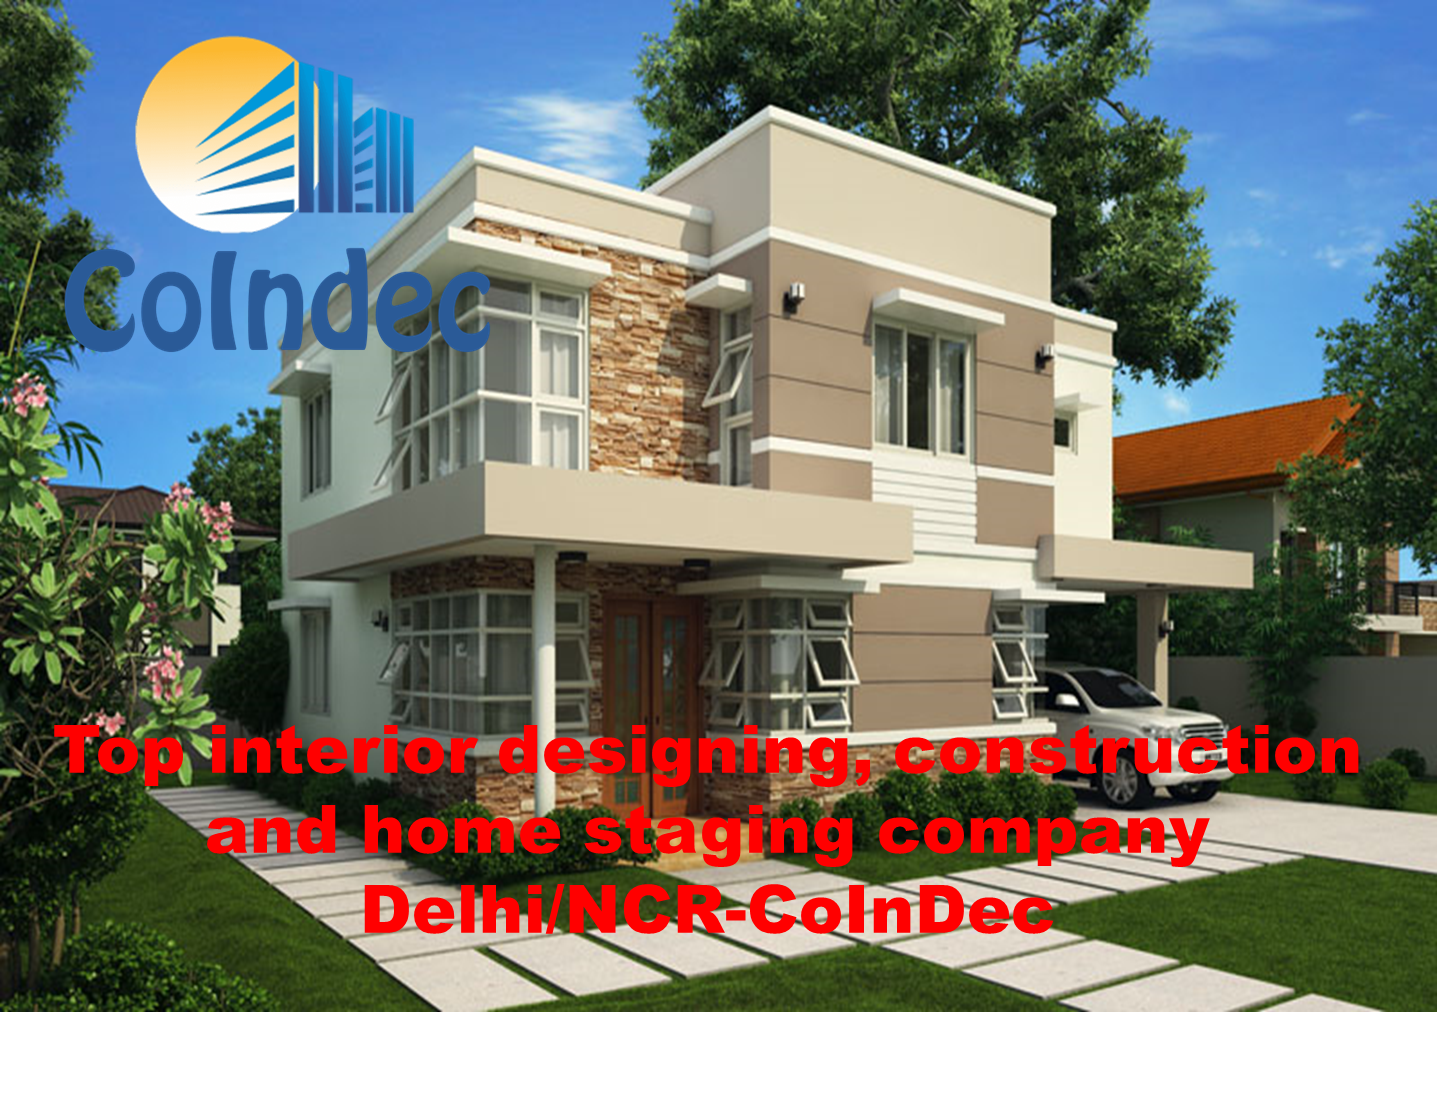 With The Help Of Interior Designers, Decorators And Constructor, You Can Create  Your Dream House. Find More Benefits Or Contact Experts At +91 91360 11111.